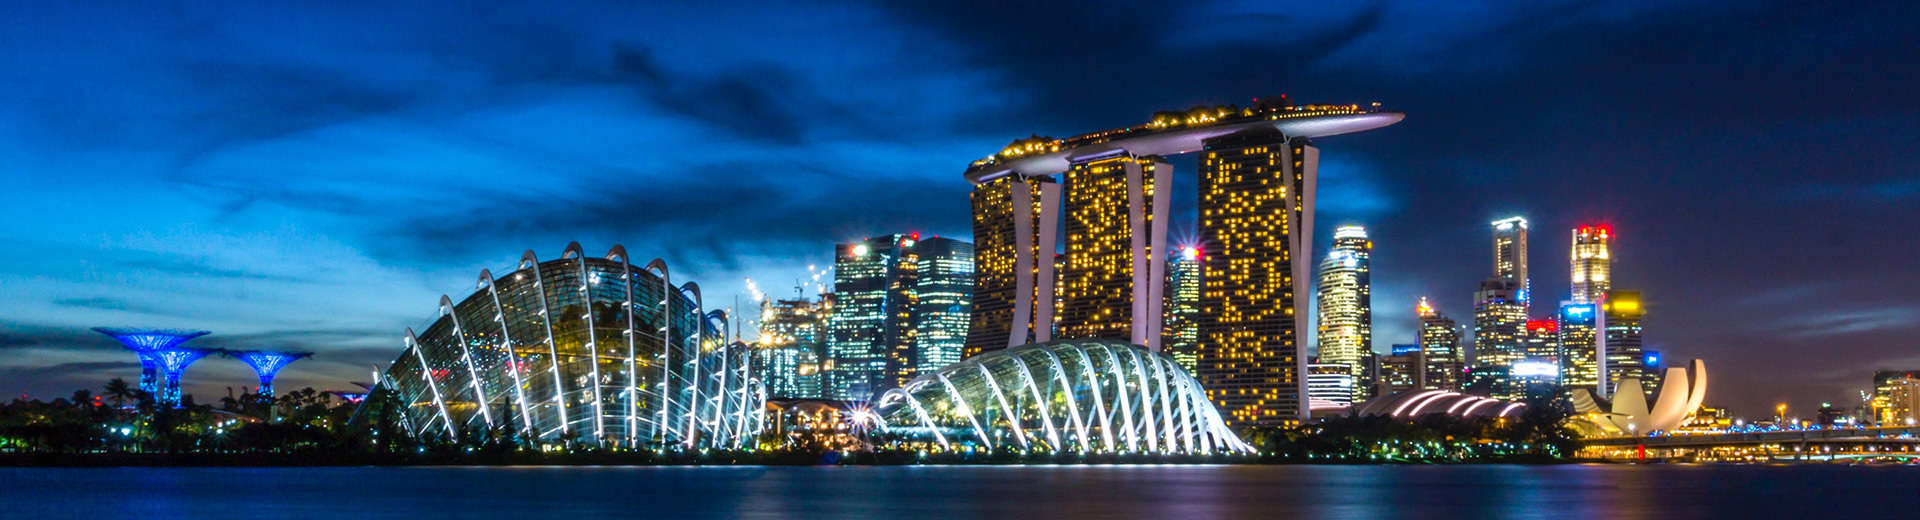 The singapore skyline at night